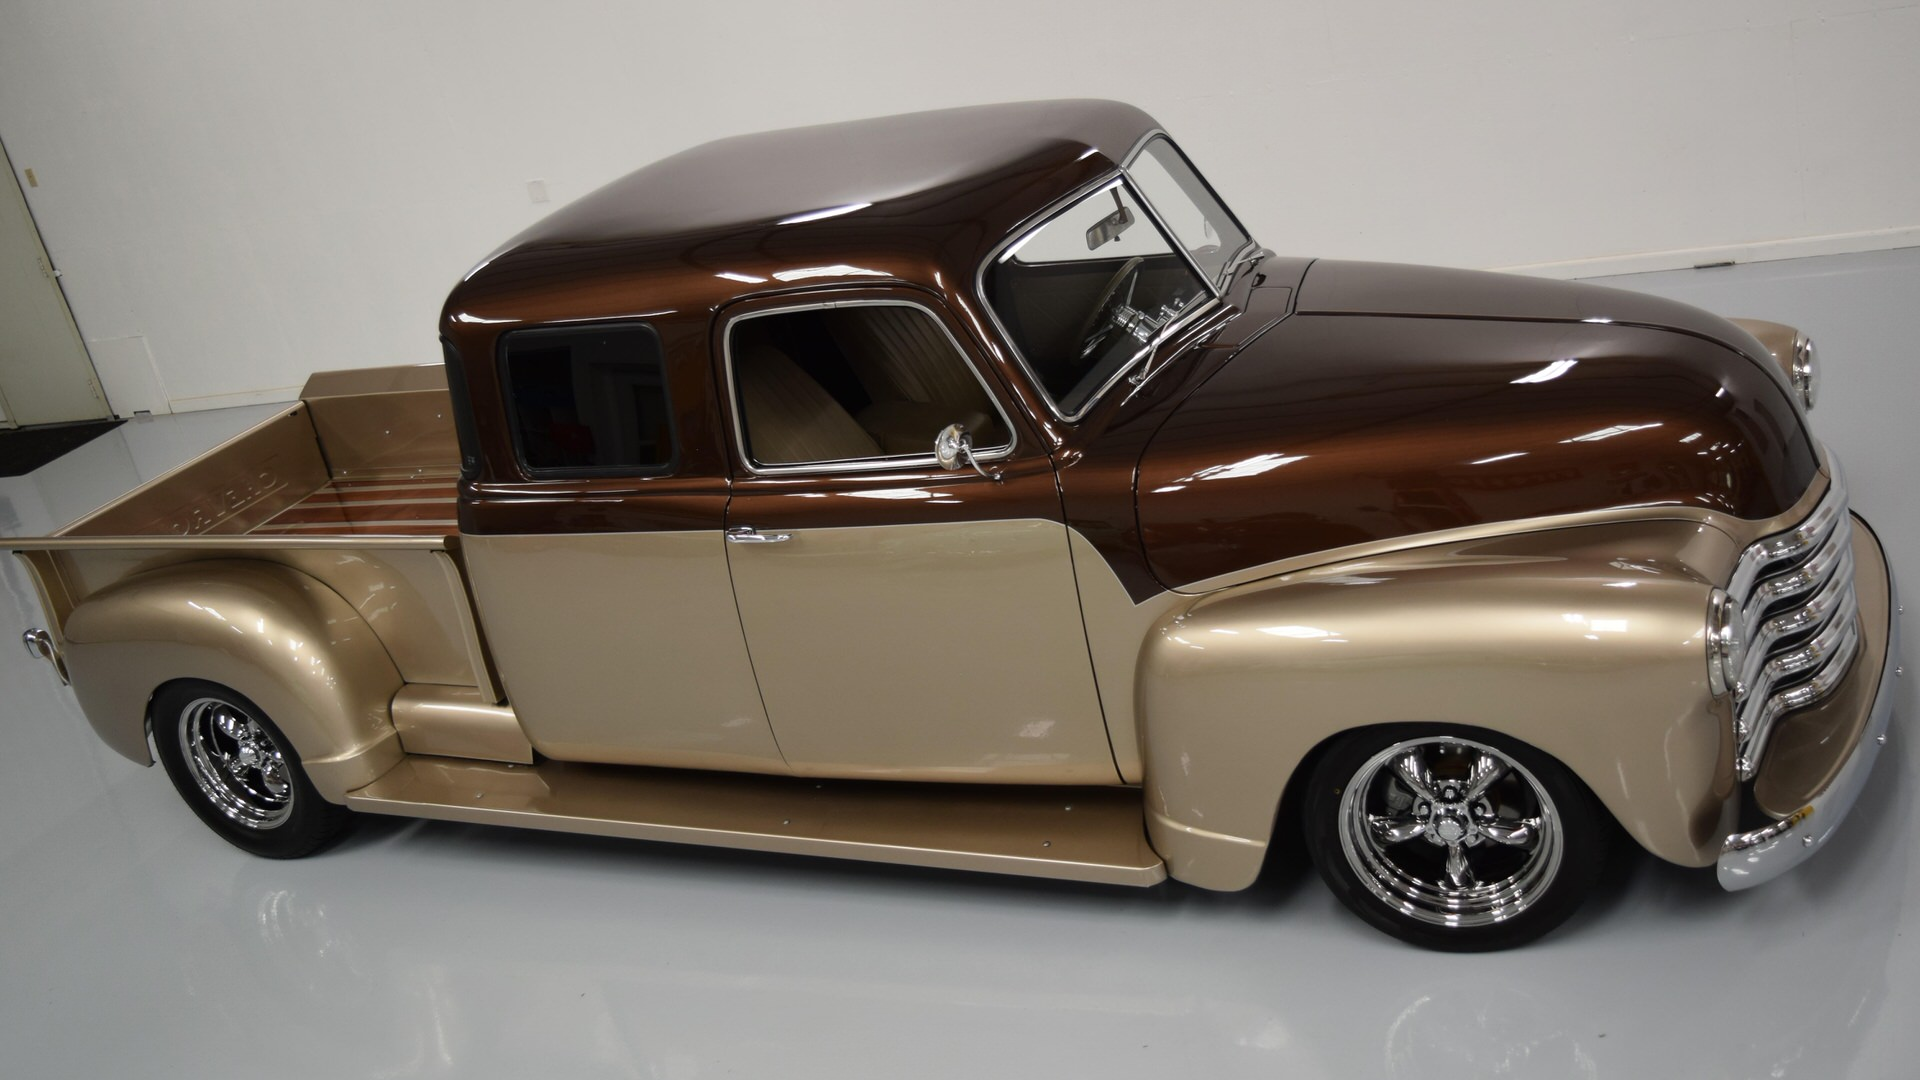 1950 Chevrolet Truck 7-window CUSTOM STRETCH CAB